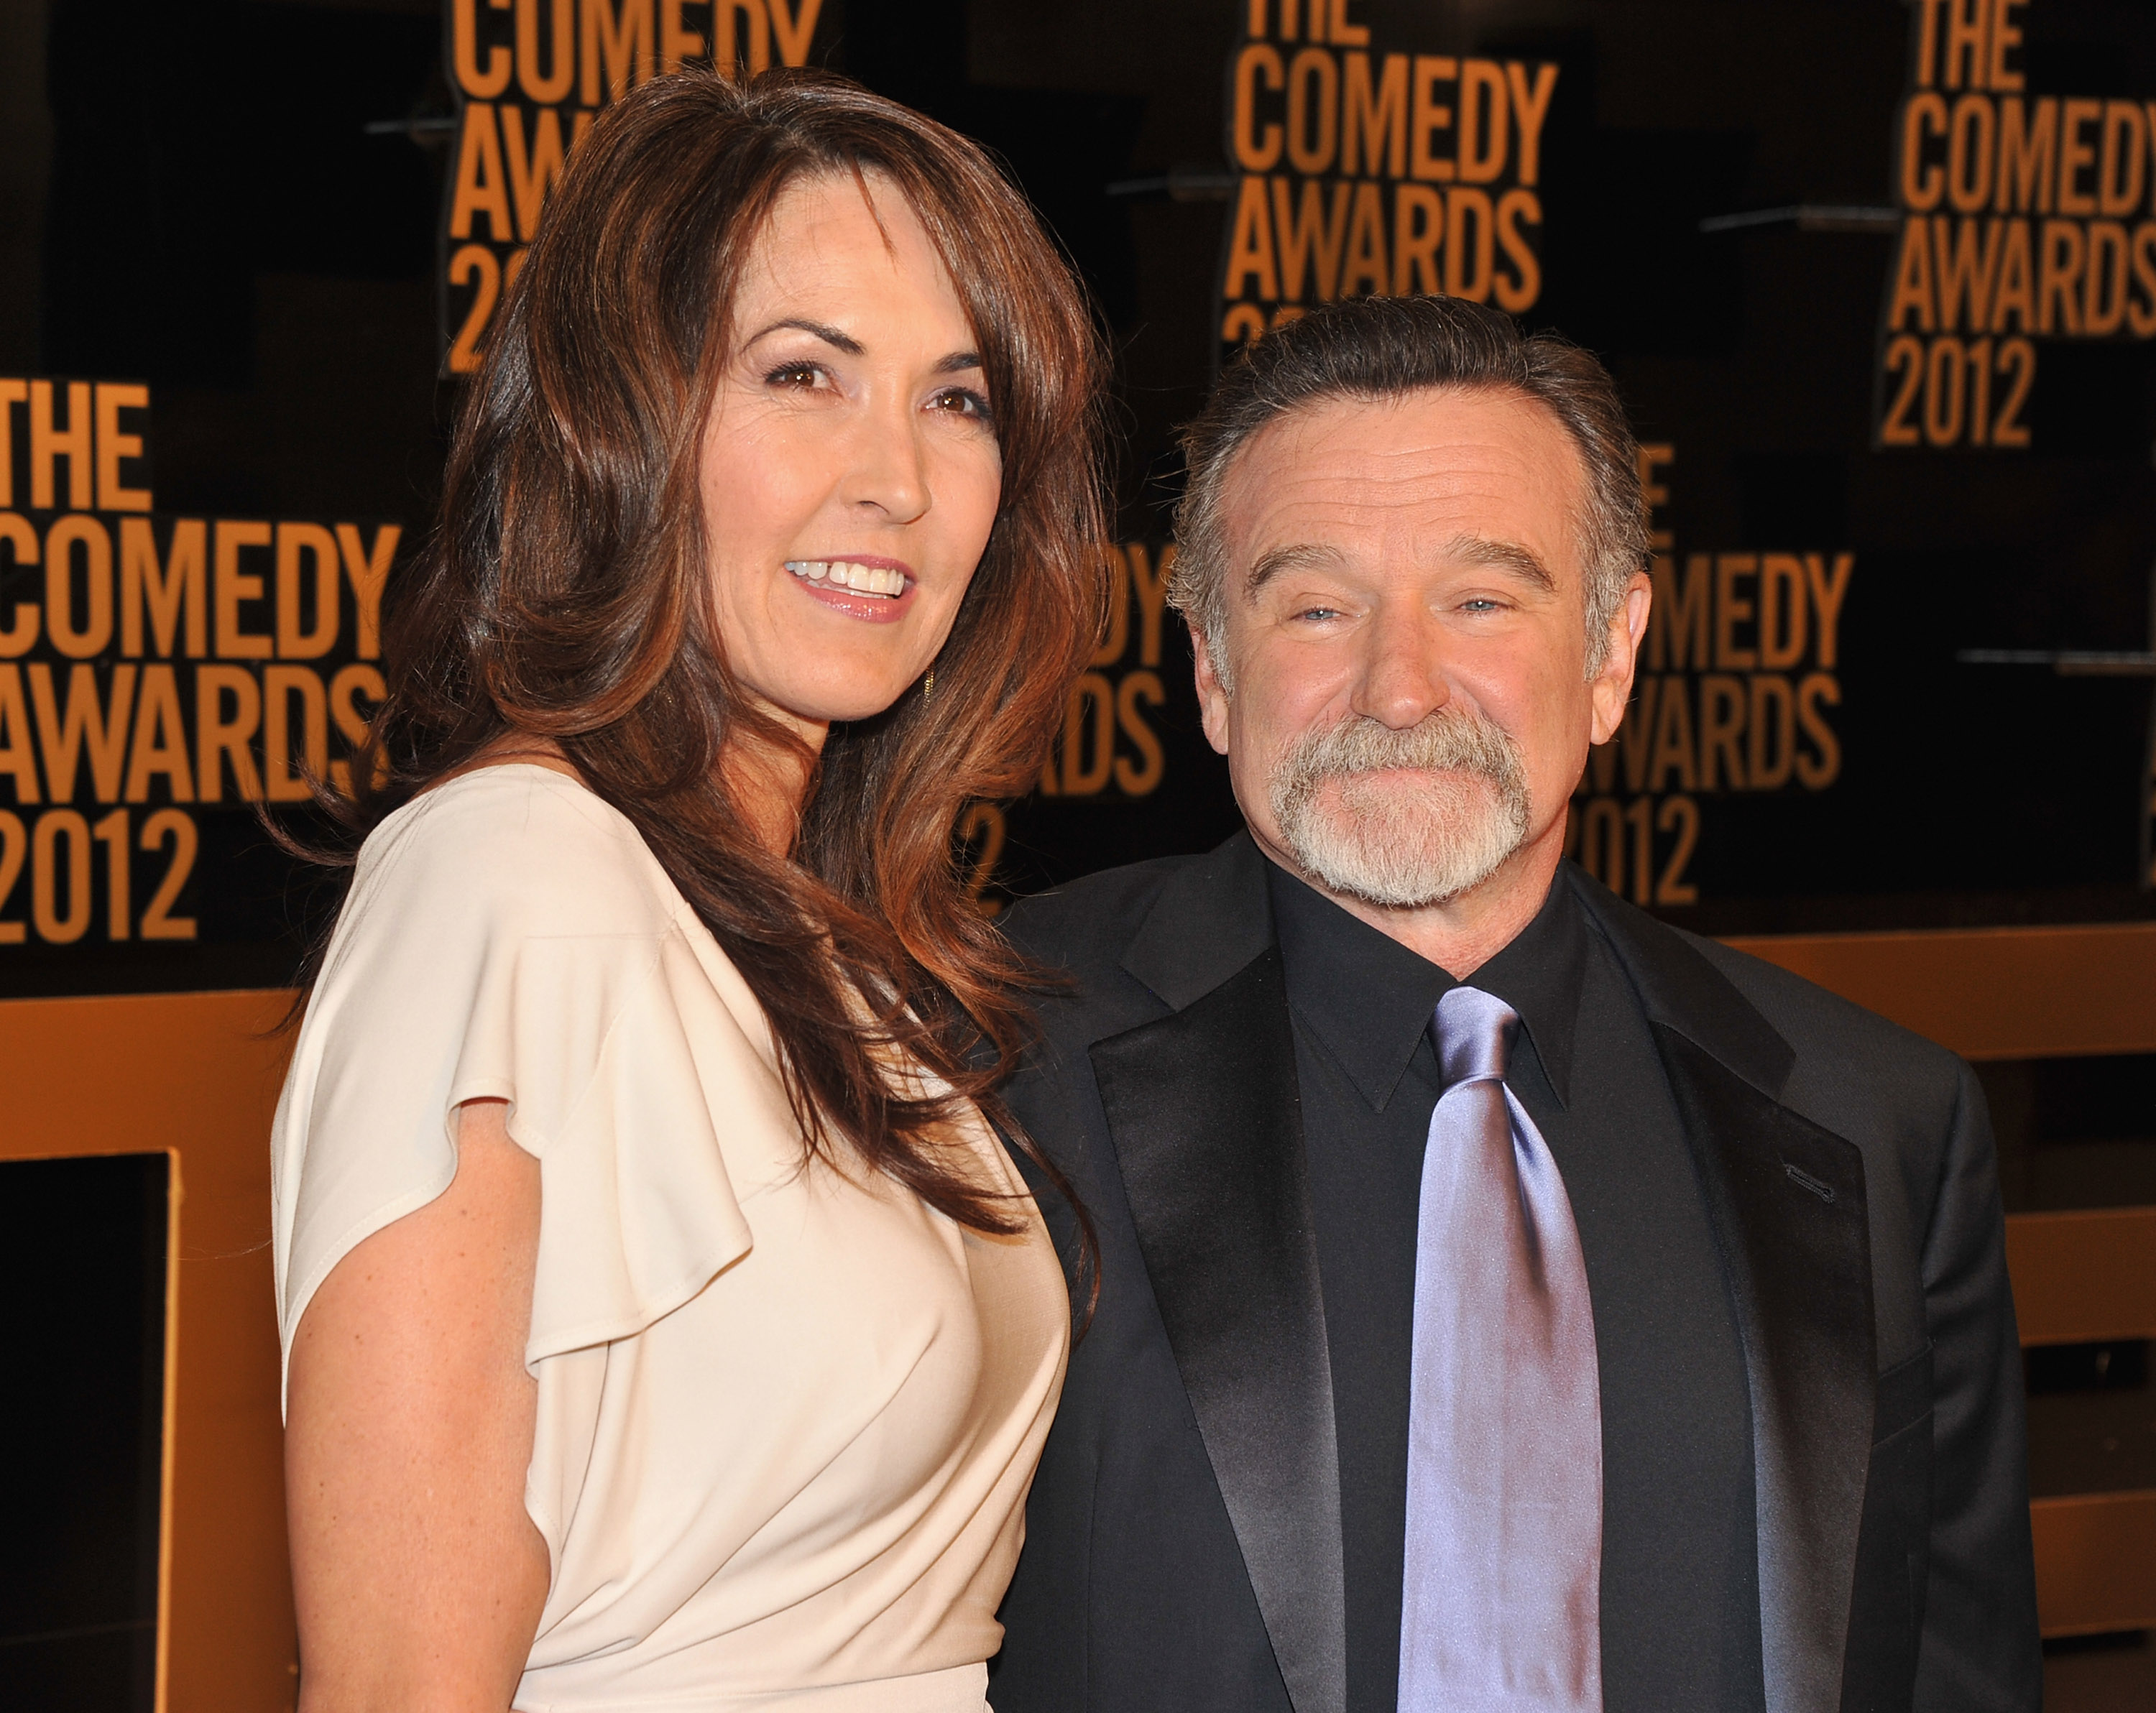 Susan schneider opens about robin williams 39 death claims for The garden designer robin williams